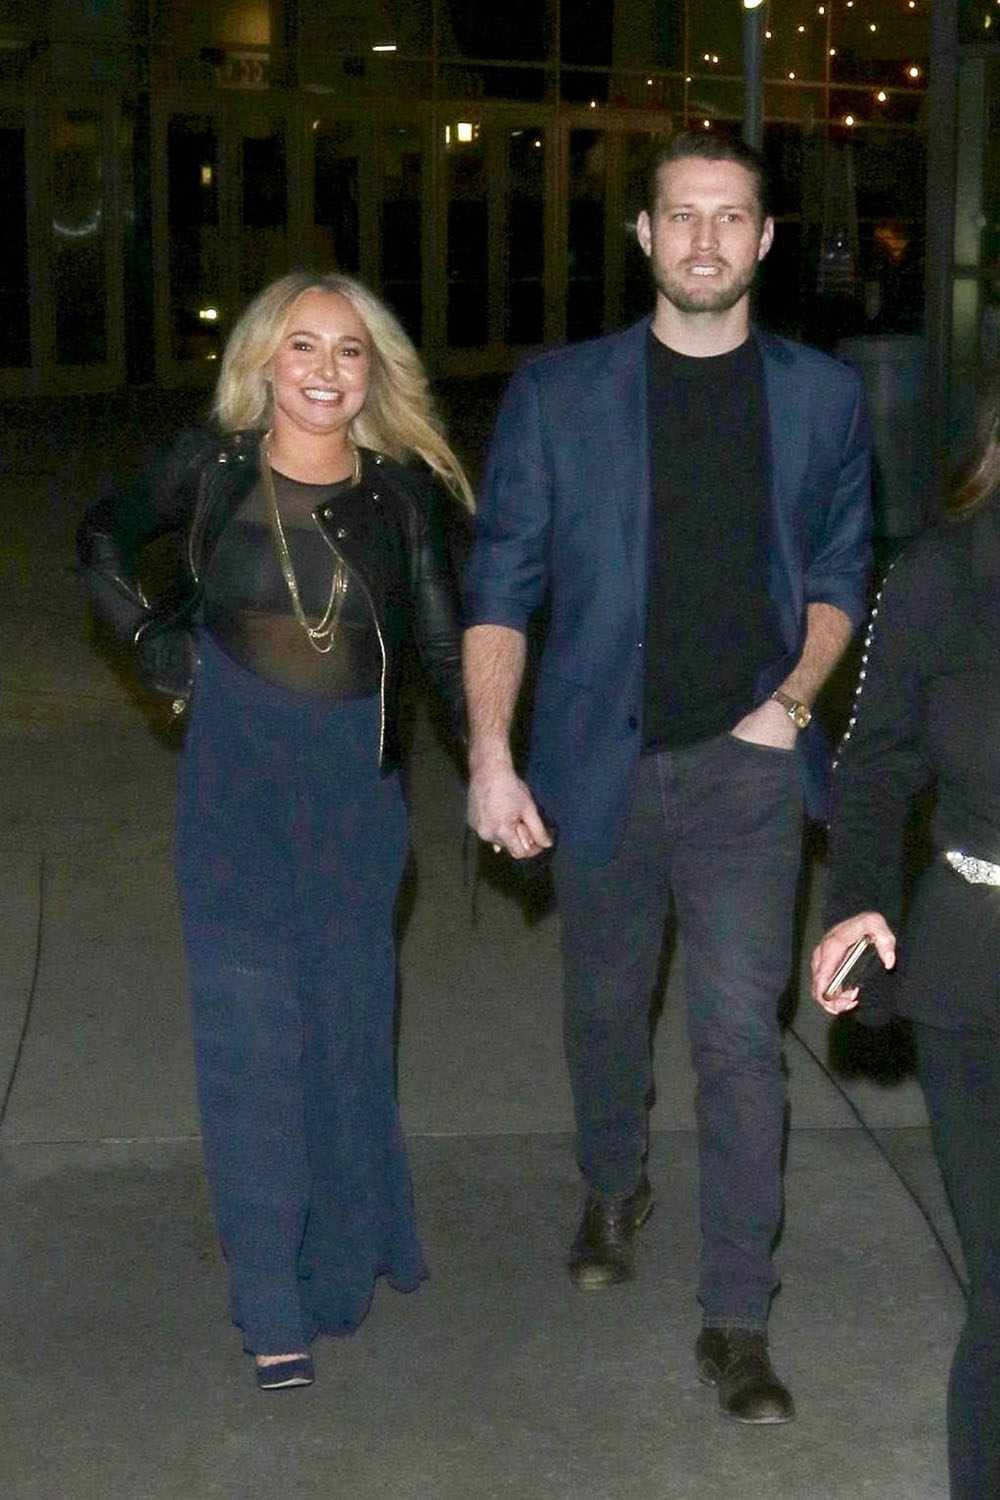 Hayden Panettiere and Brian Hickerson enjoy a date night at ArcLight Theatre in Hollywood